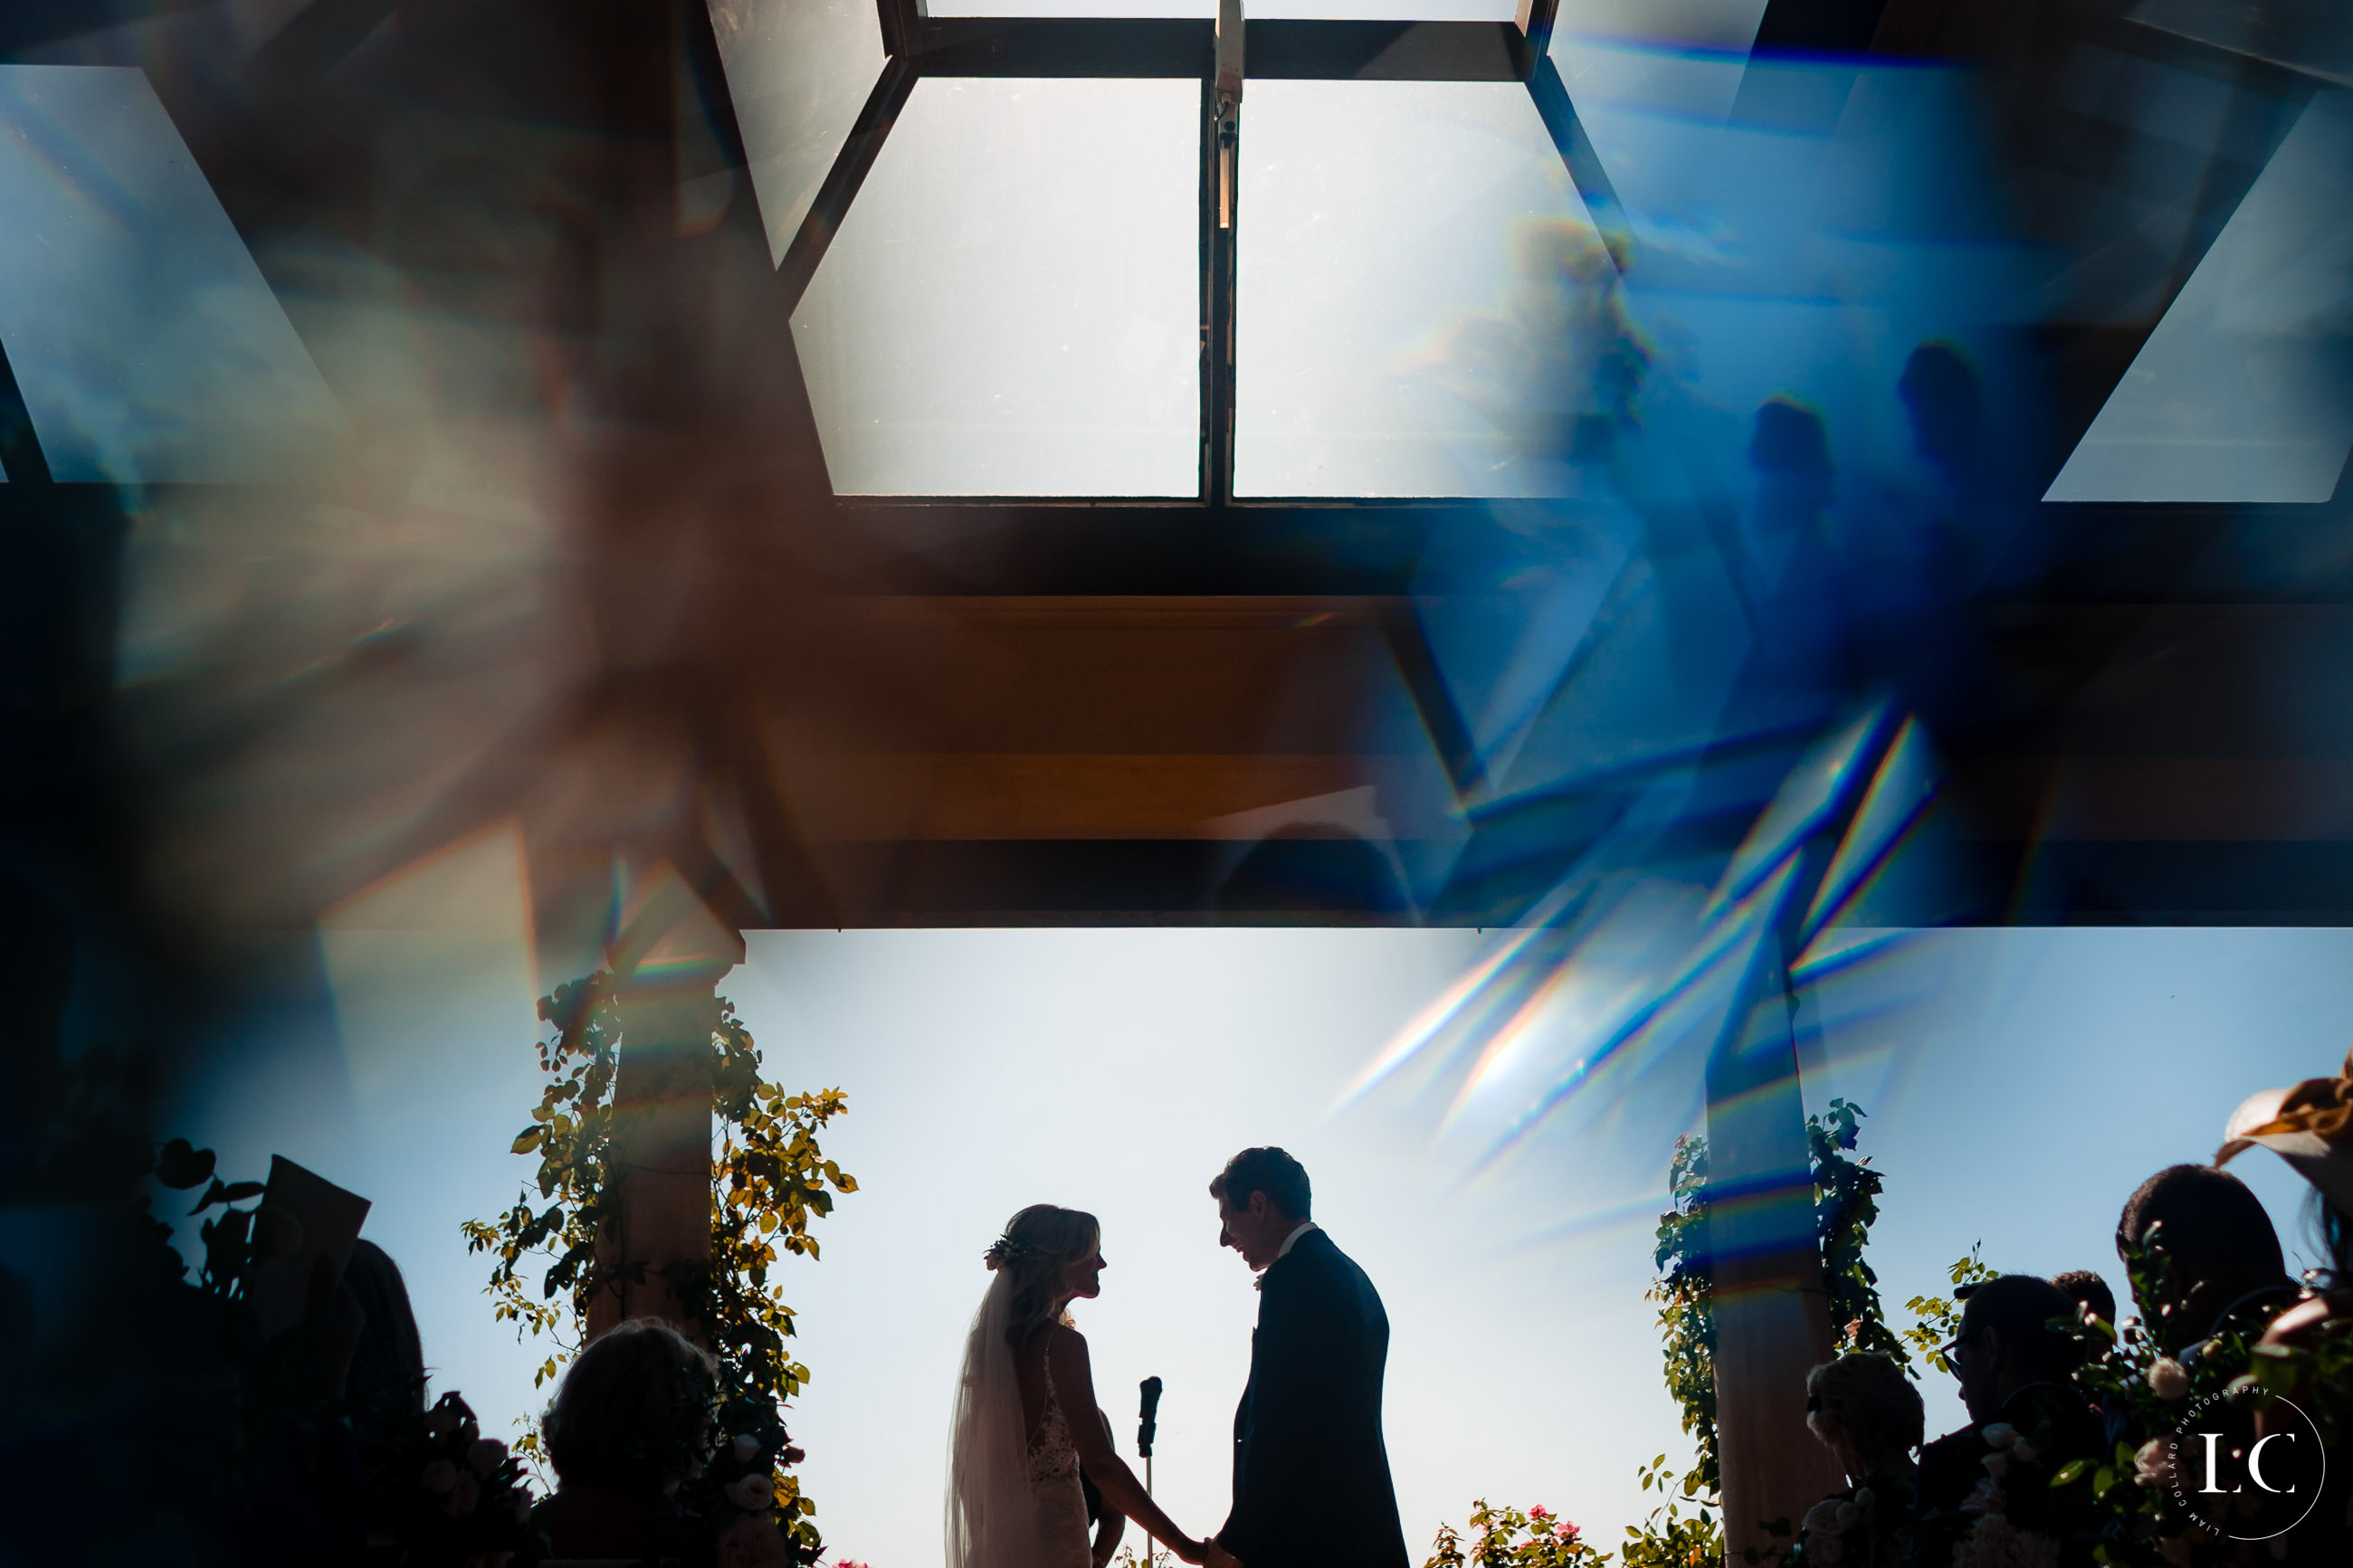 Shadow of bride and groom